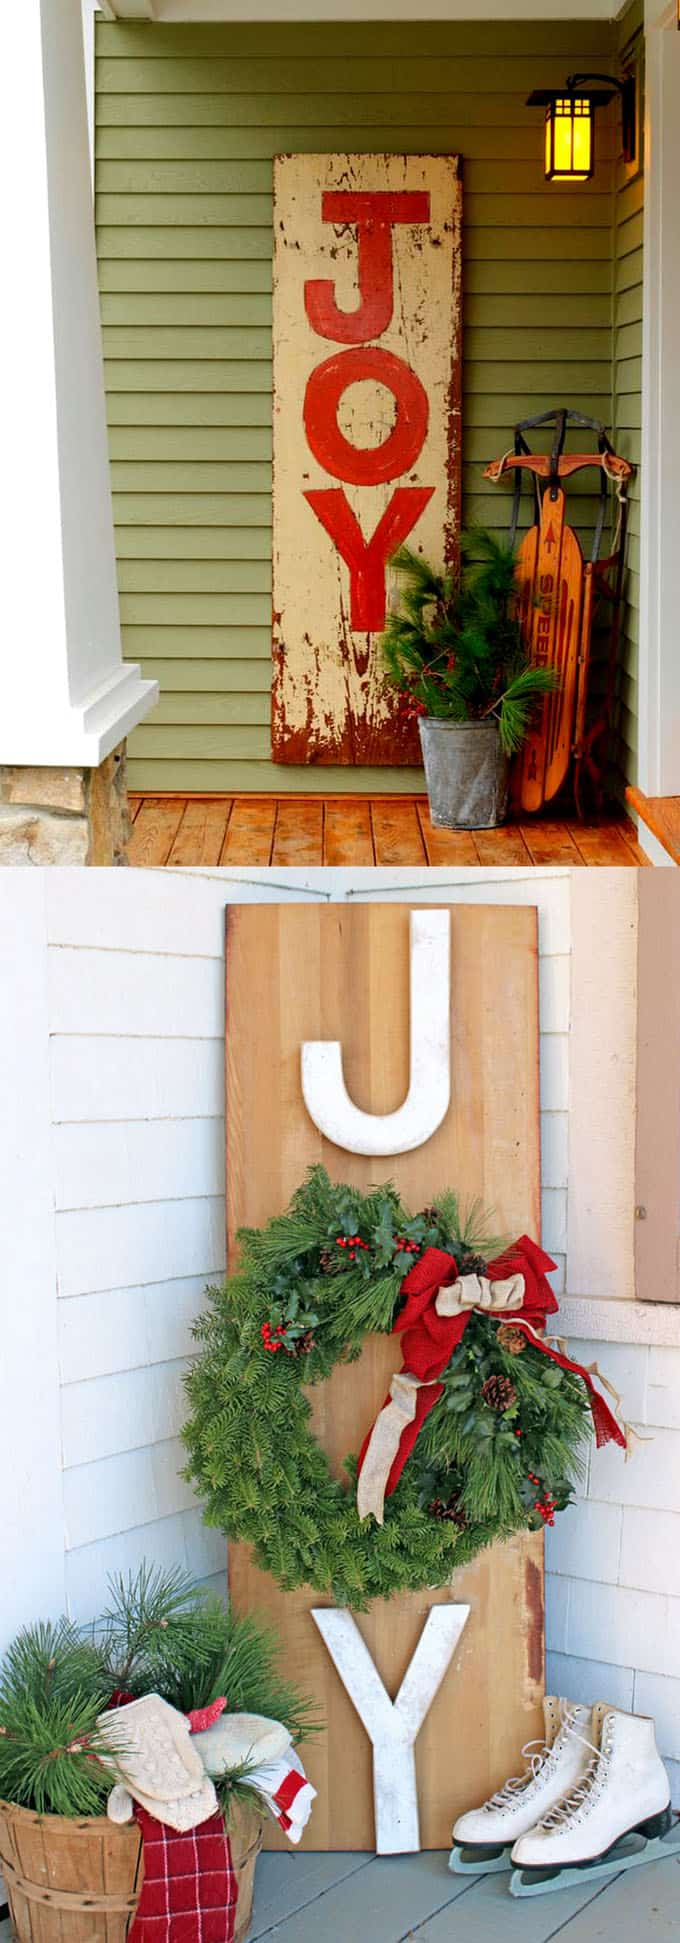 Painted Wood Signs In Outdoor Christmas Decorations